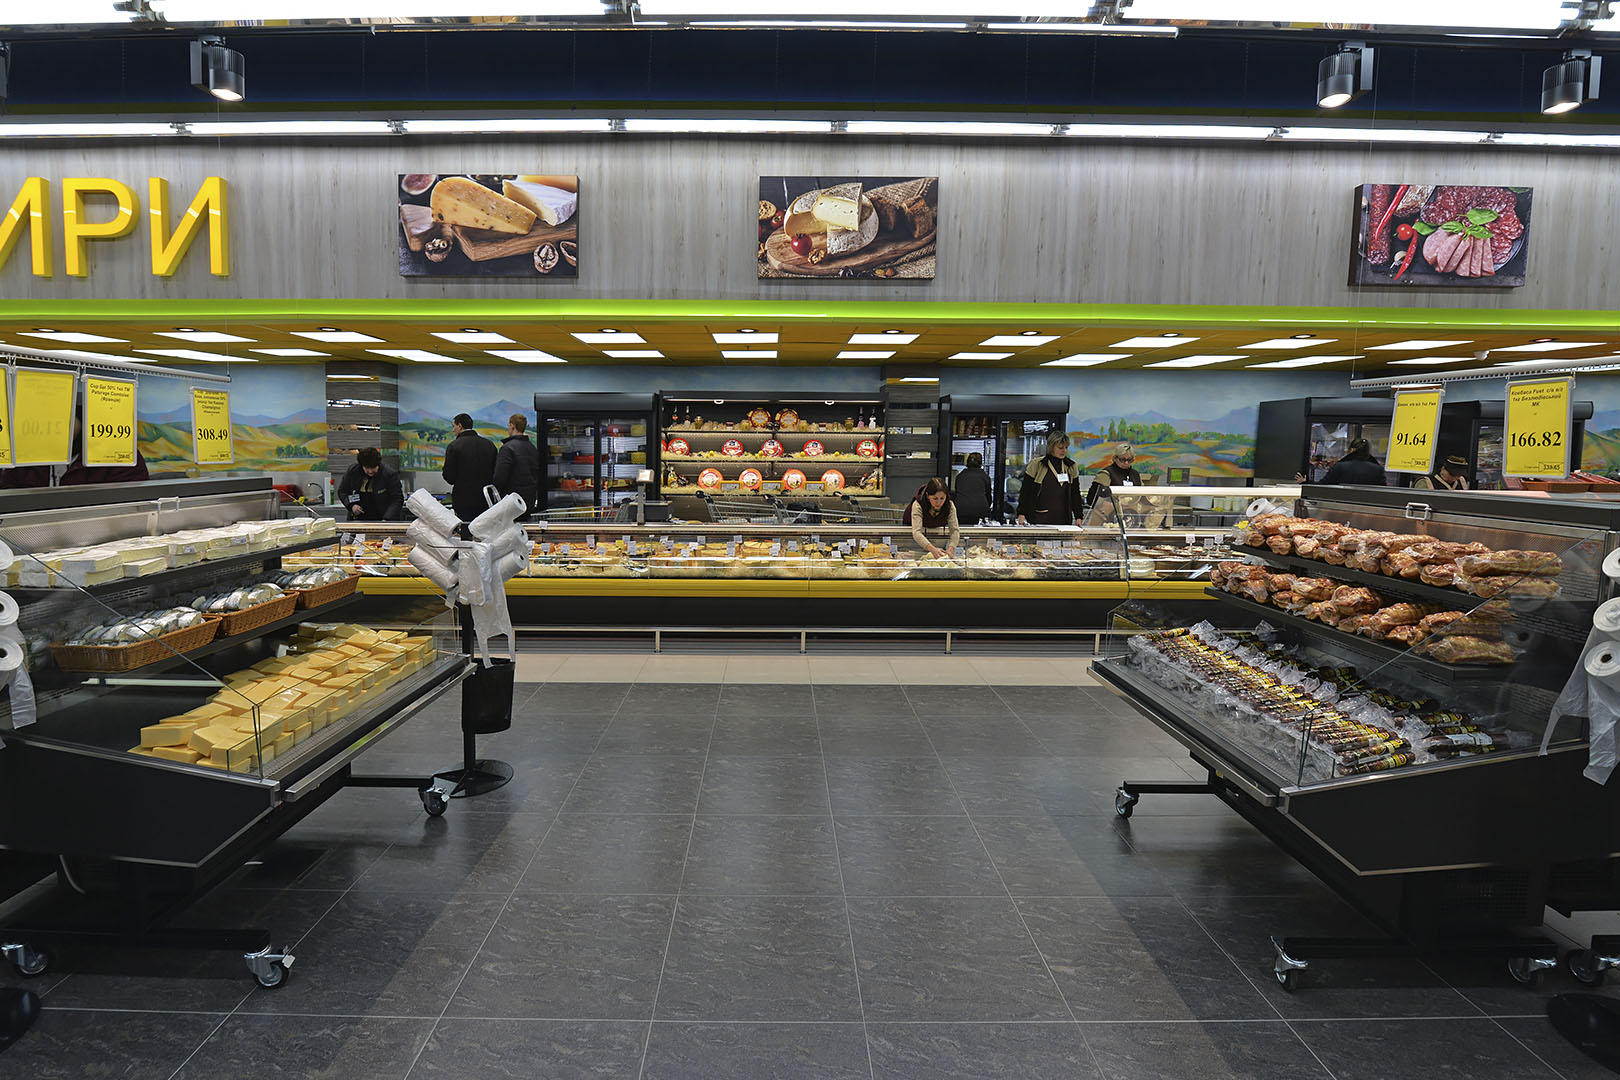 Promotional merchandisers Missouri promo MC 100 deli self 140-DLA, counters Symphony light MG 120 deli PS 125-DLM